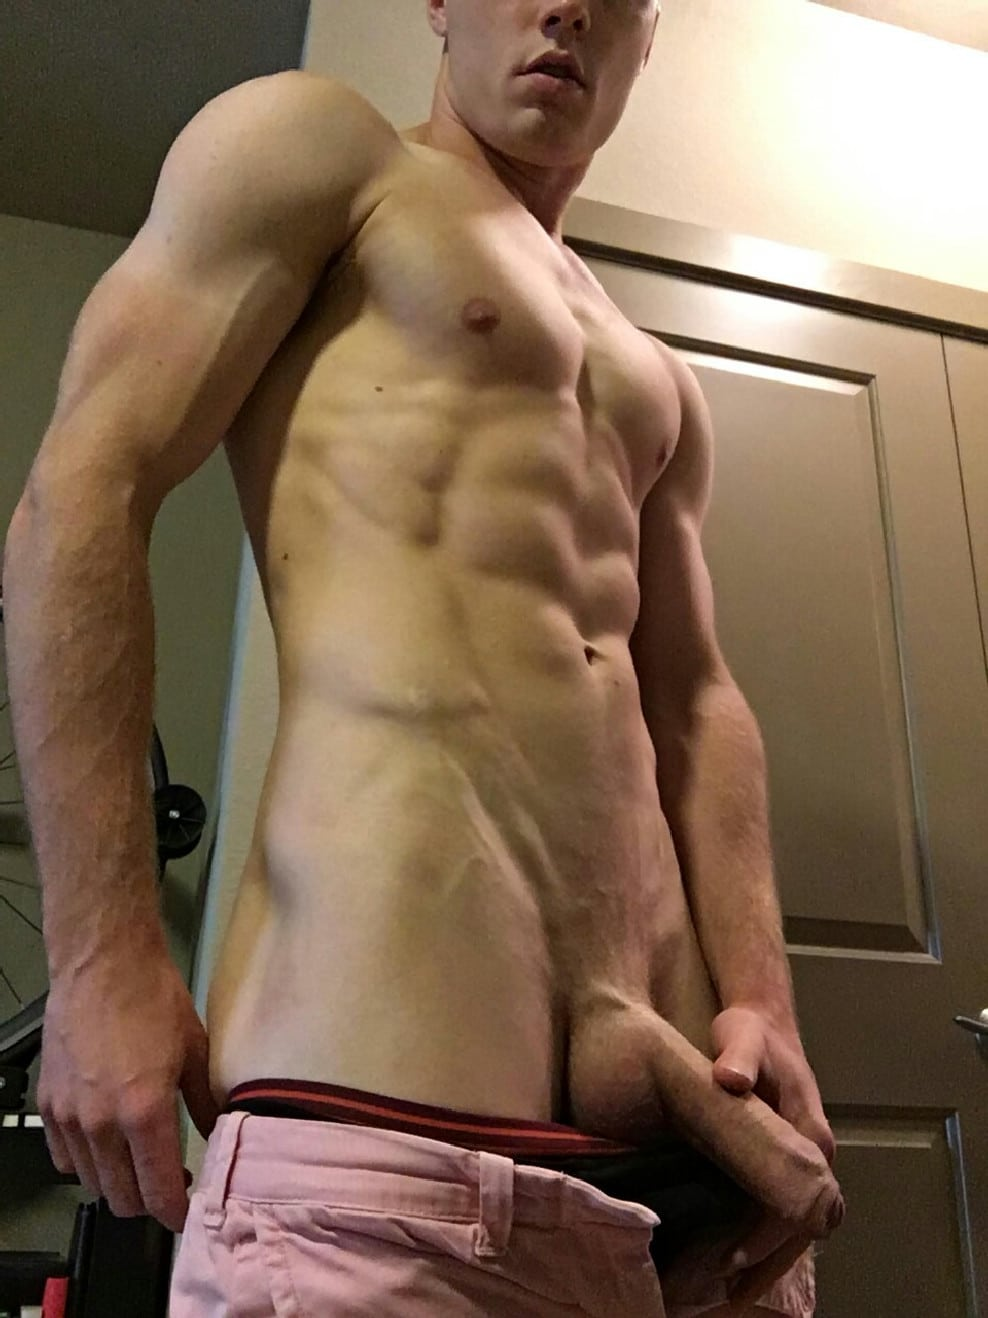 Naked men cocks picture have